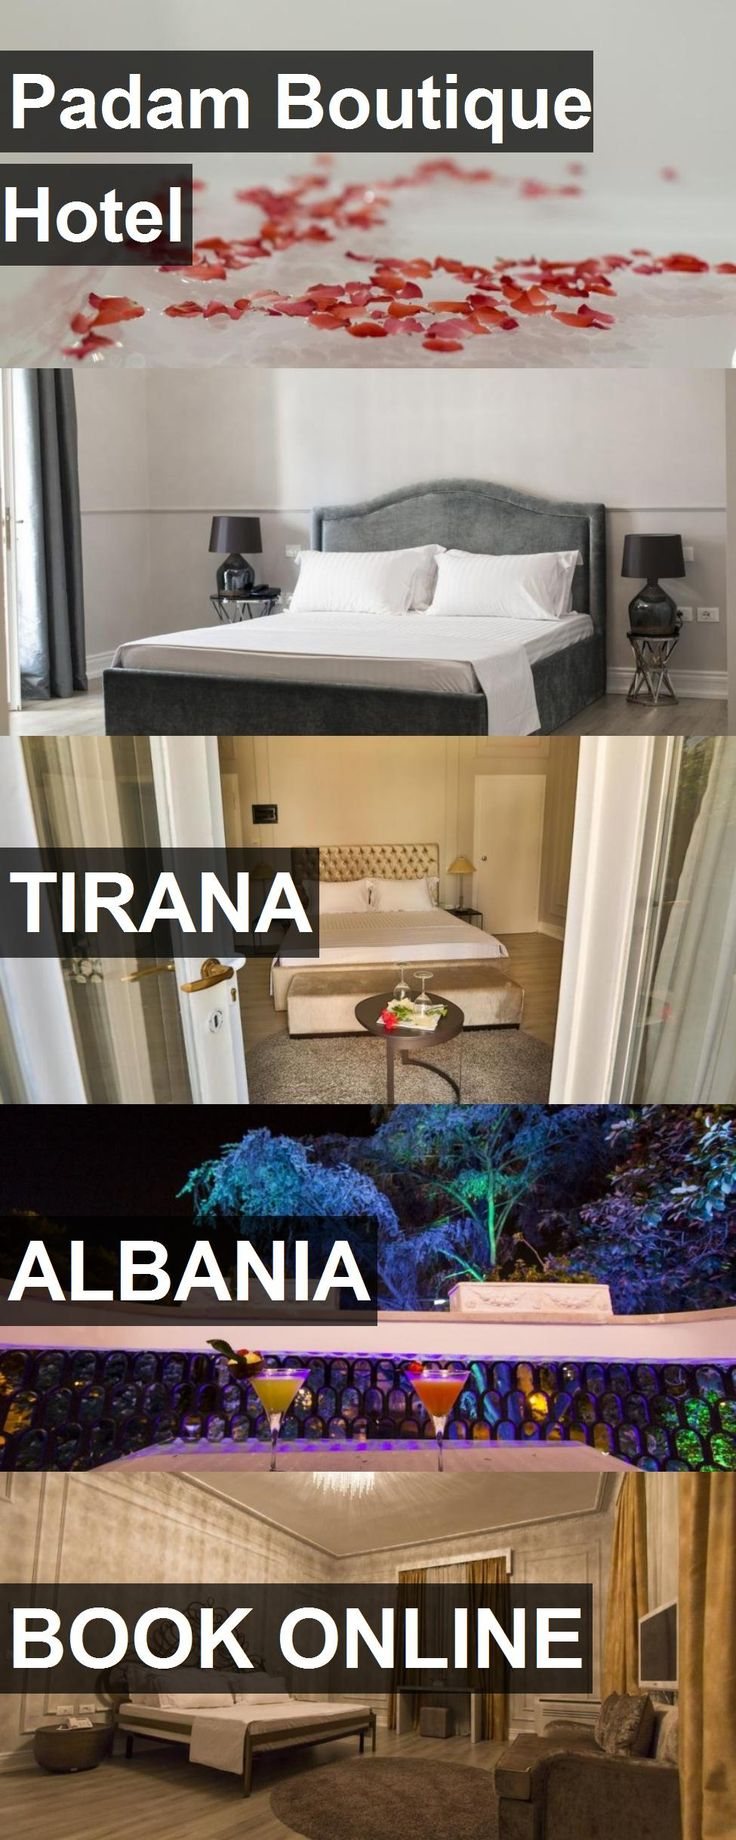 Hotel Padam Boutique Hotel in Tirana, Albania. For more information, photos, reviews and best prices please follow the link. #Albania #Tirana #PadamBoutiqueHotel #hotel #travel #vacation